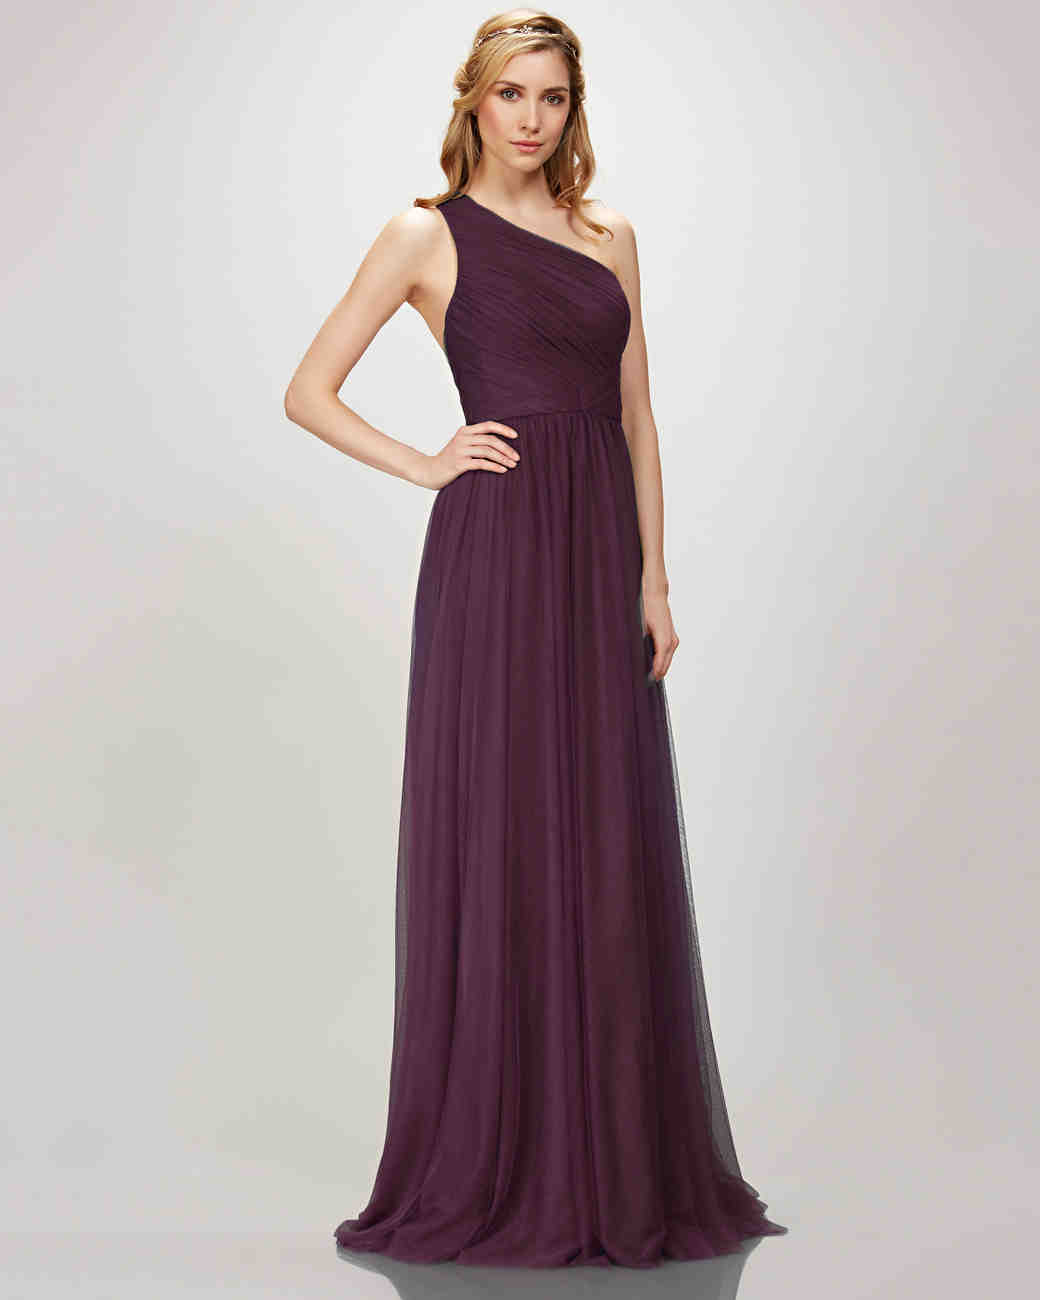 Turquoise And Purple Bridesmaid Dresses | Purple Bridesmaid Dresses Martha Stewart Weddings